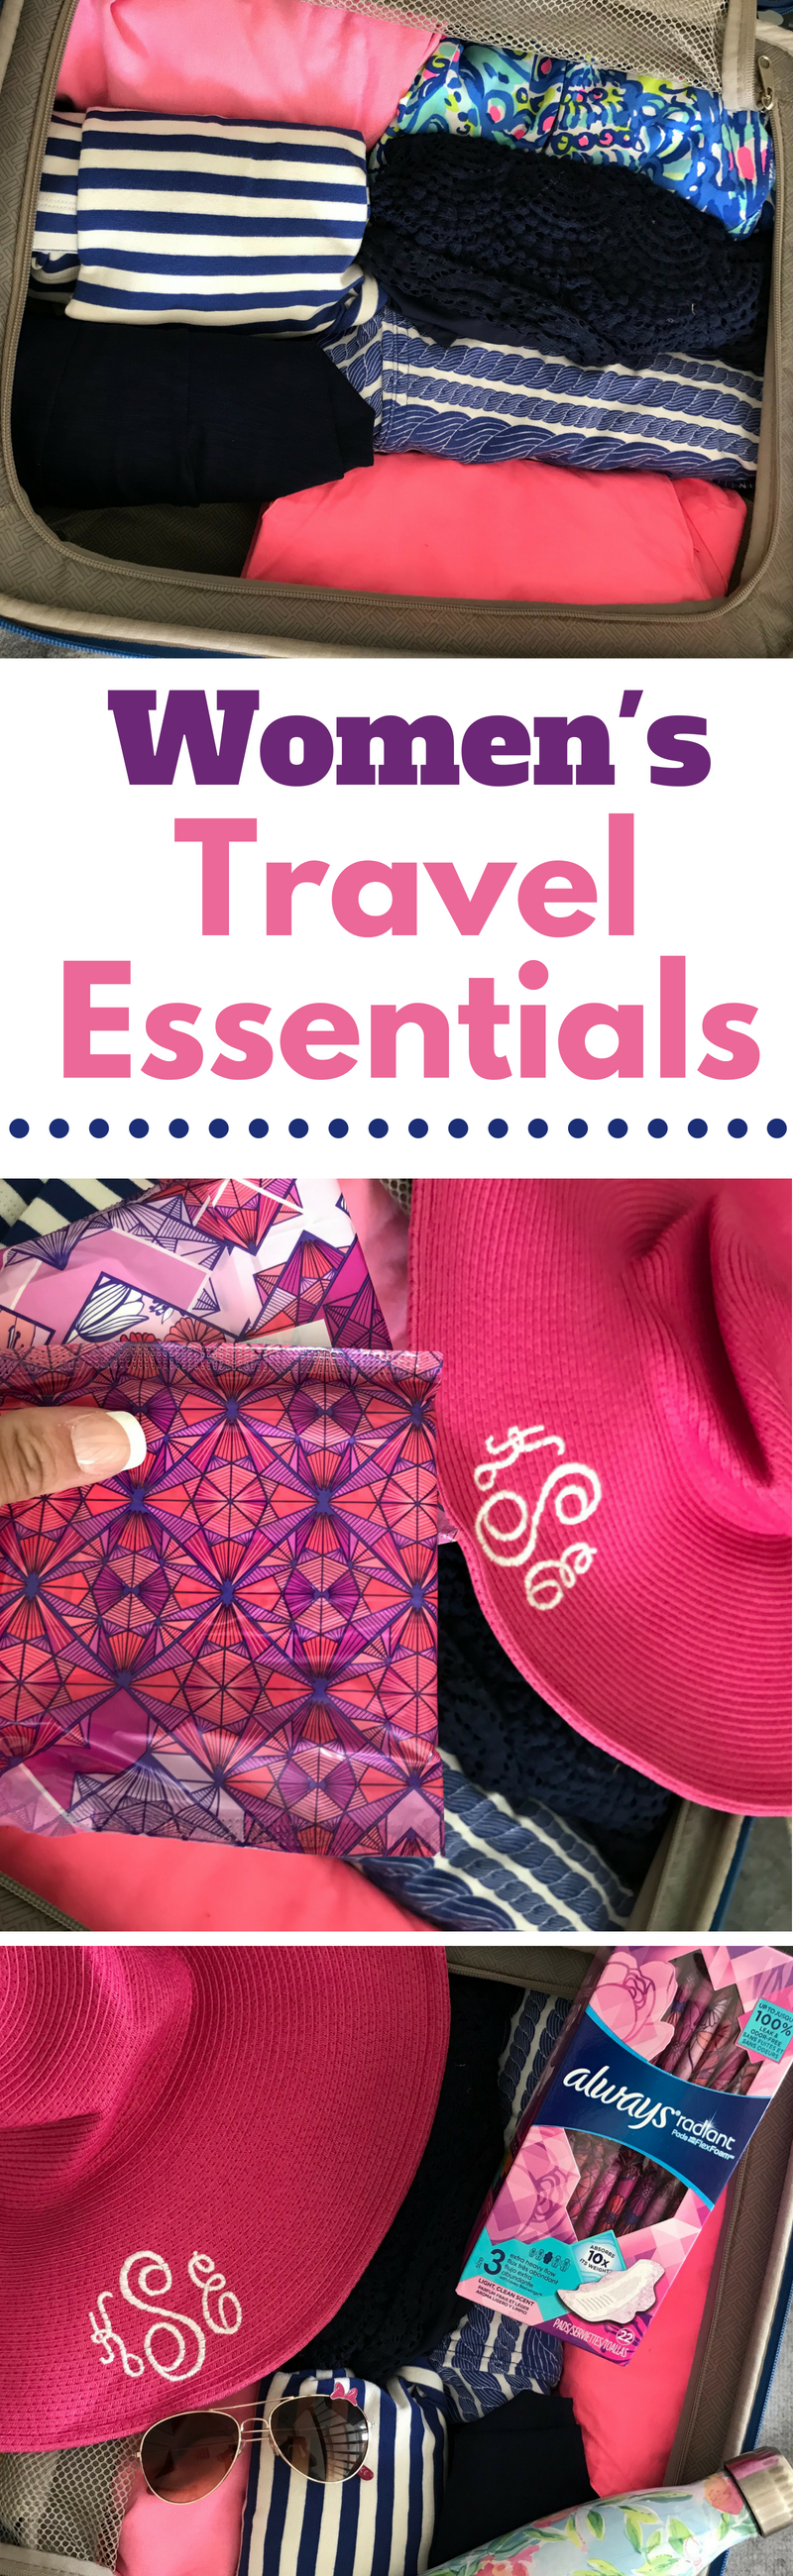 #AD The travel items that solo female travelers should not leave home without. #WomensTravel #Travel #